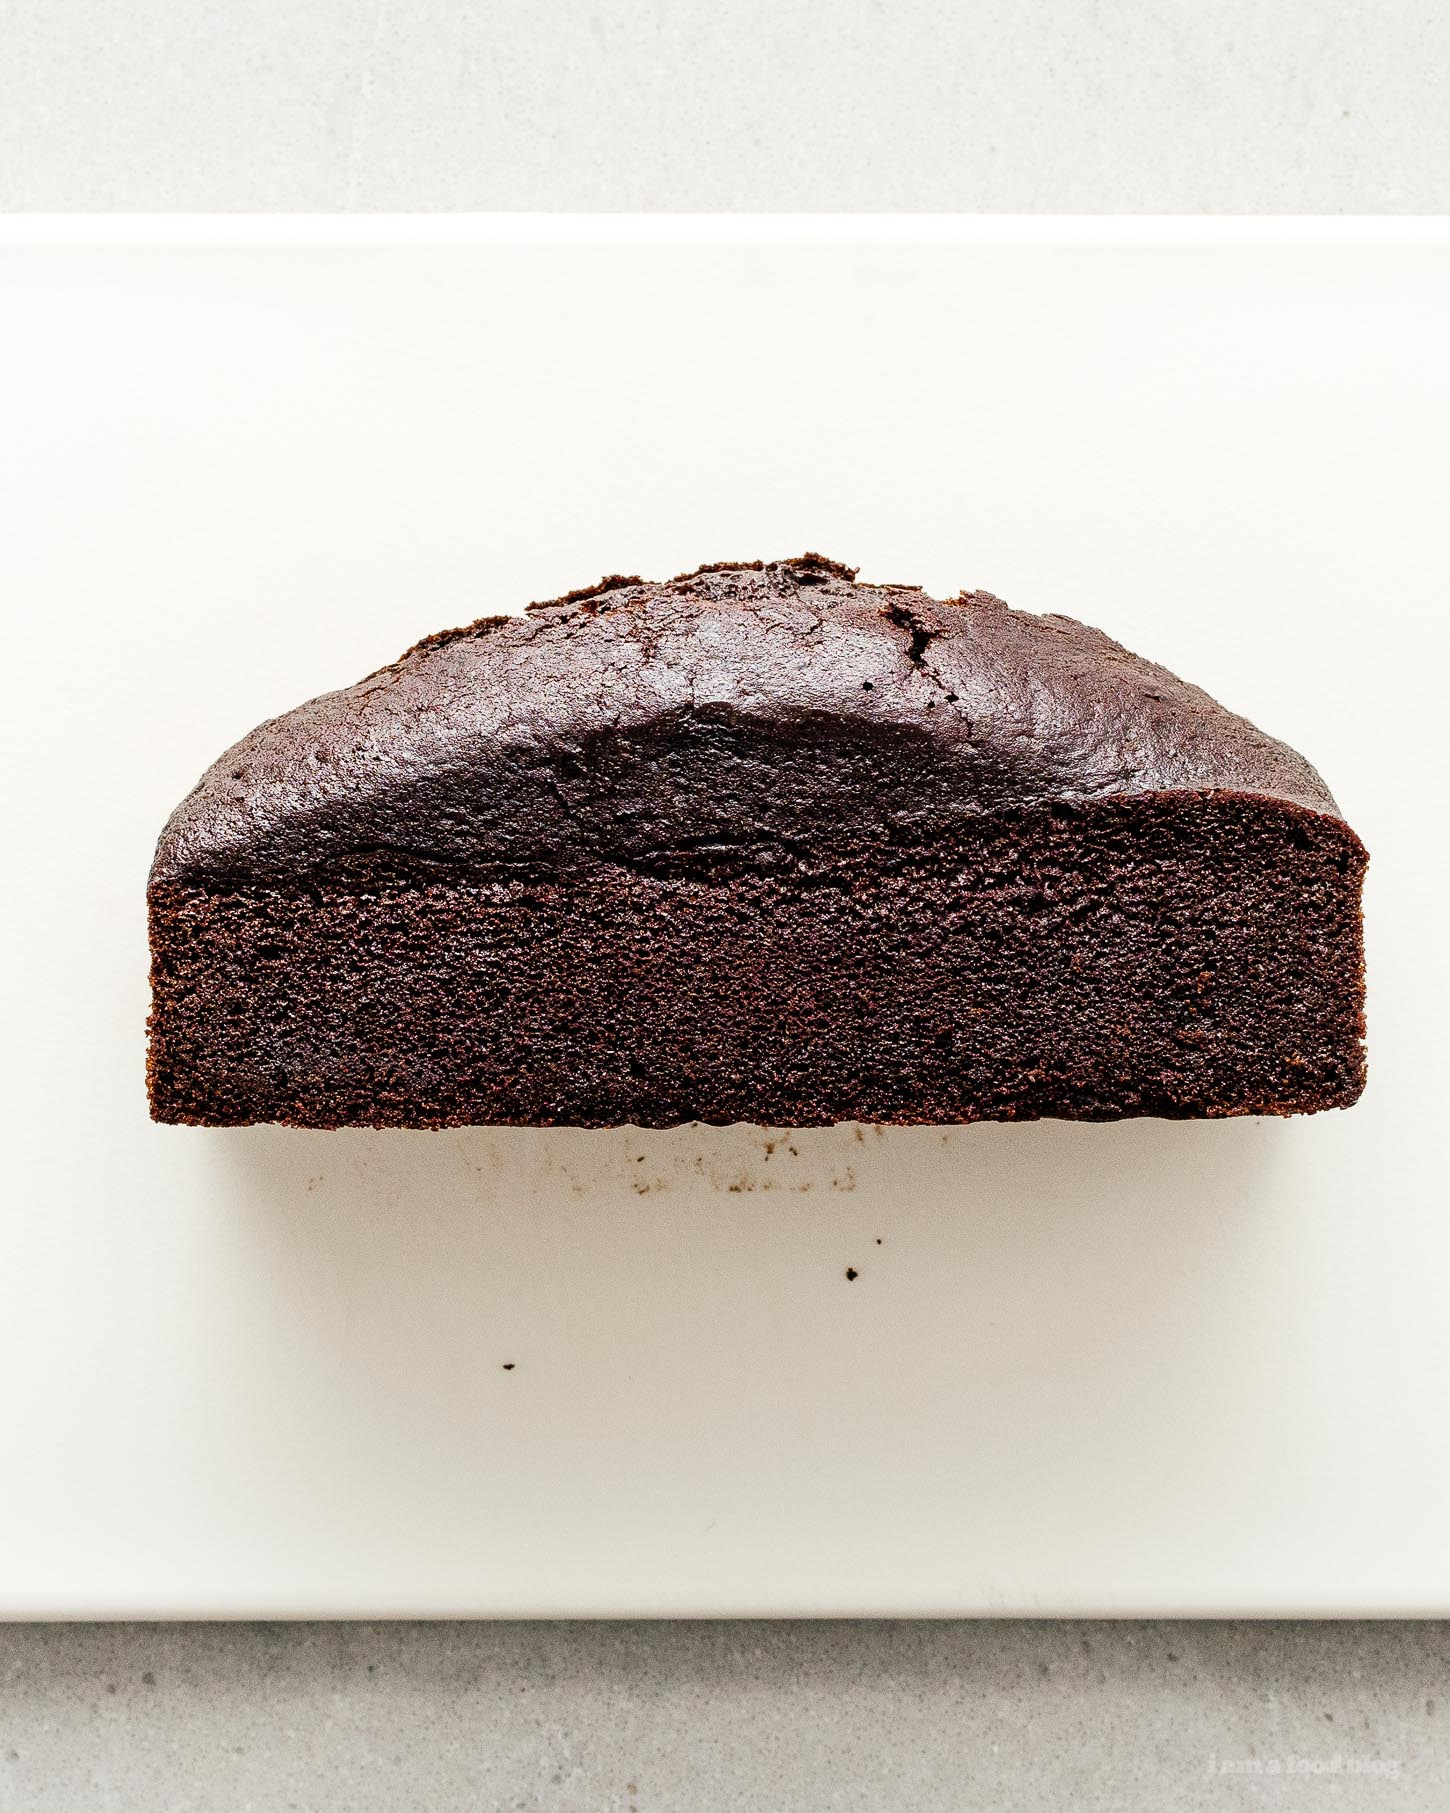 Mini Chocolate Loaf Cake Recipe | www.iamafoodblog.com